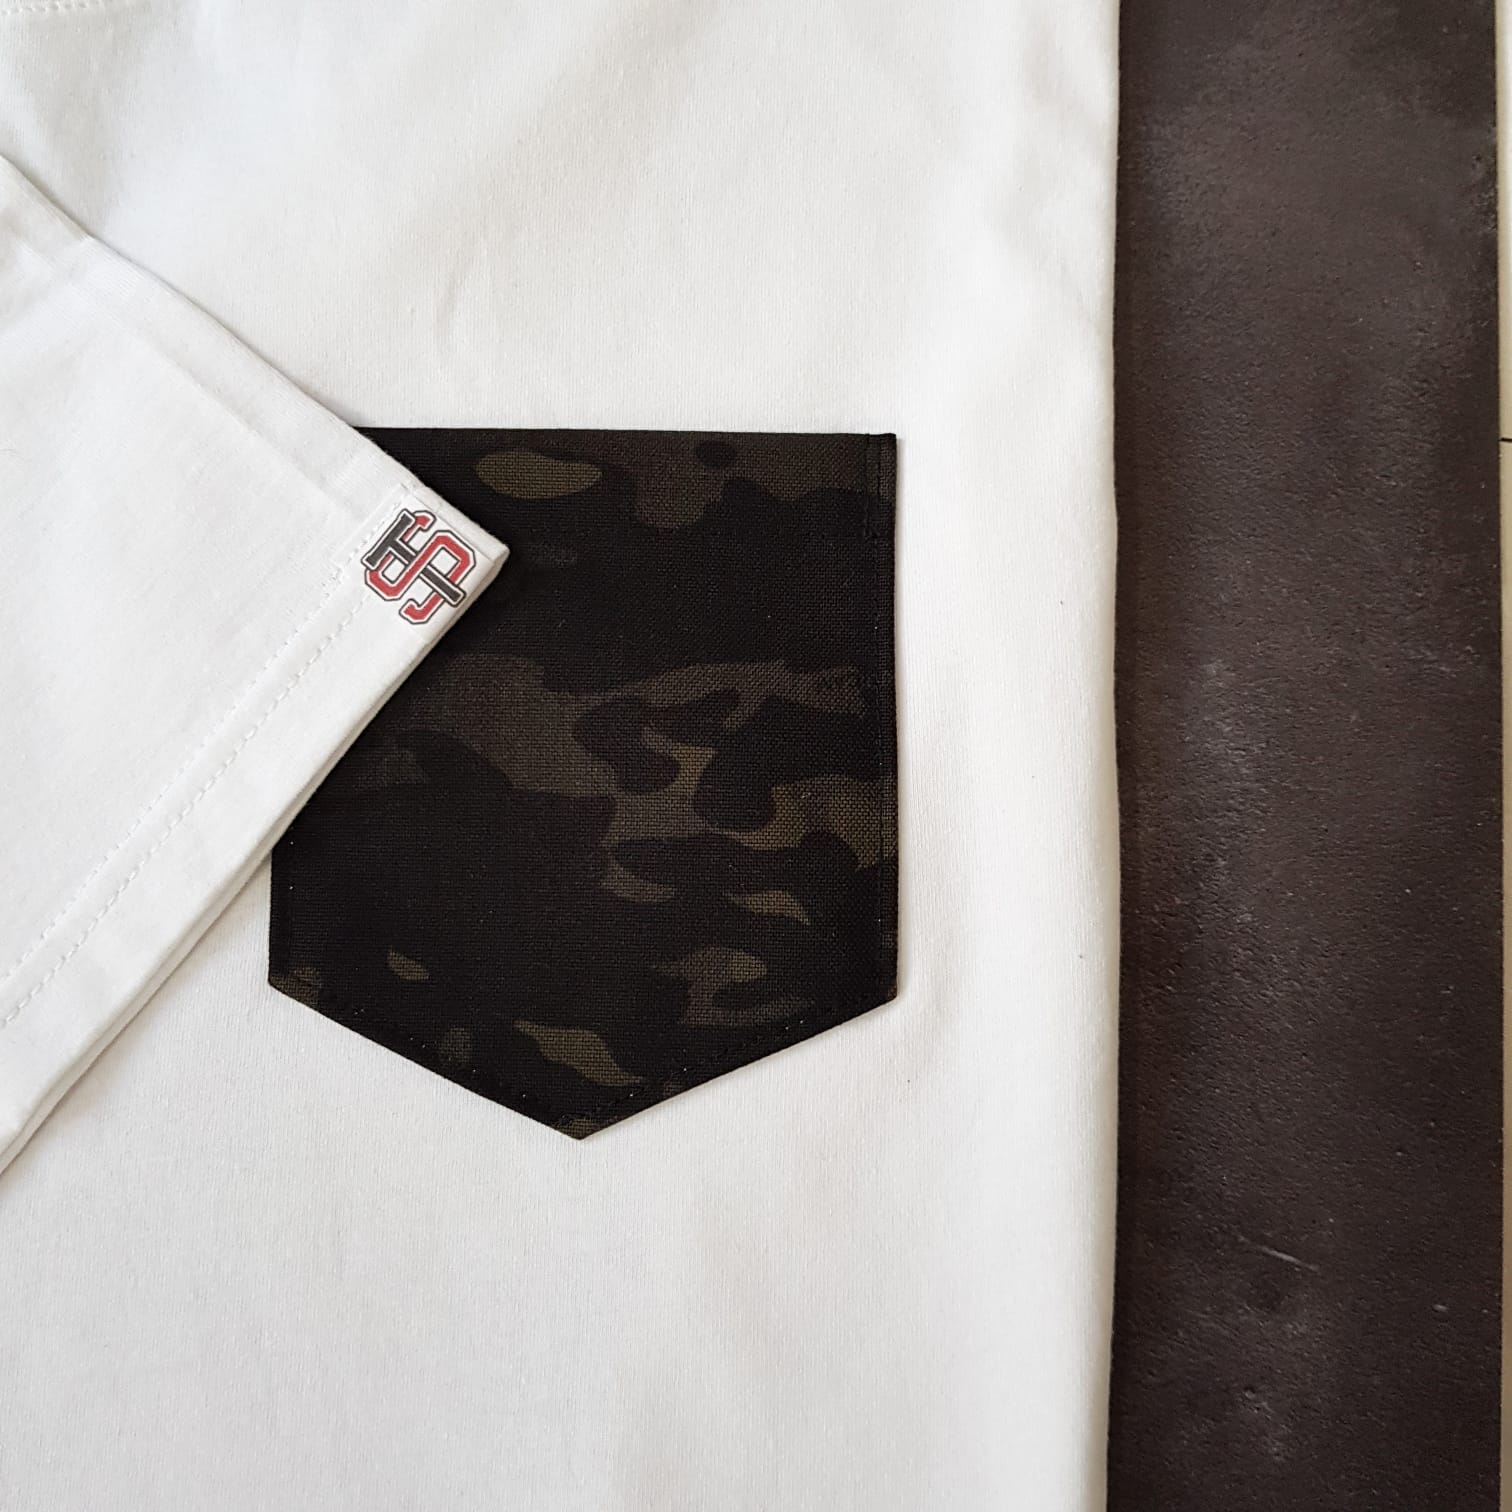 Limited Edition White X Multicam Black Pocket Tee 'Inverse'